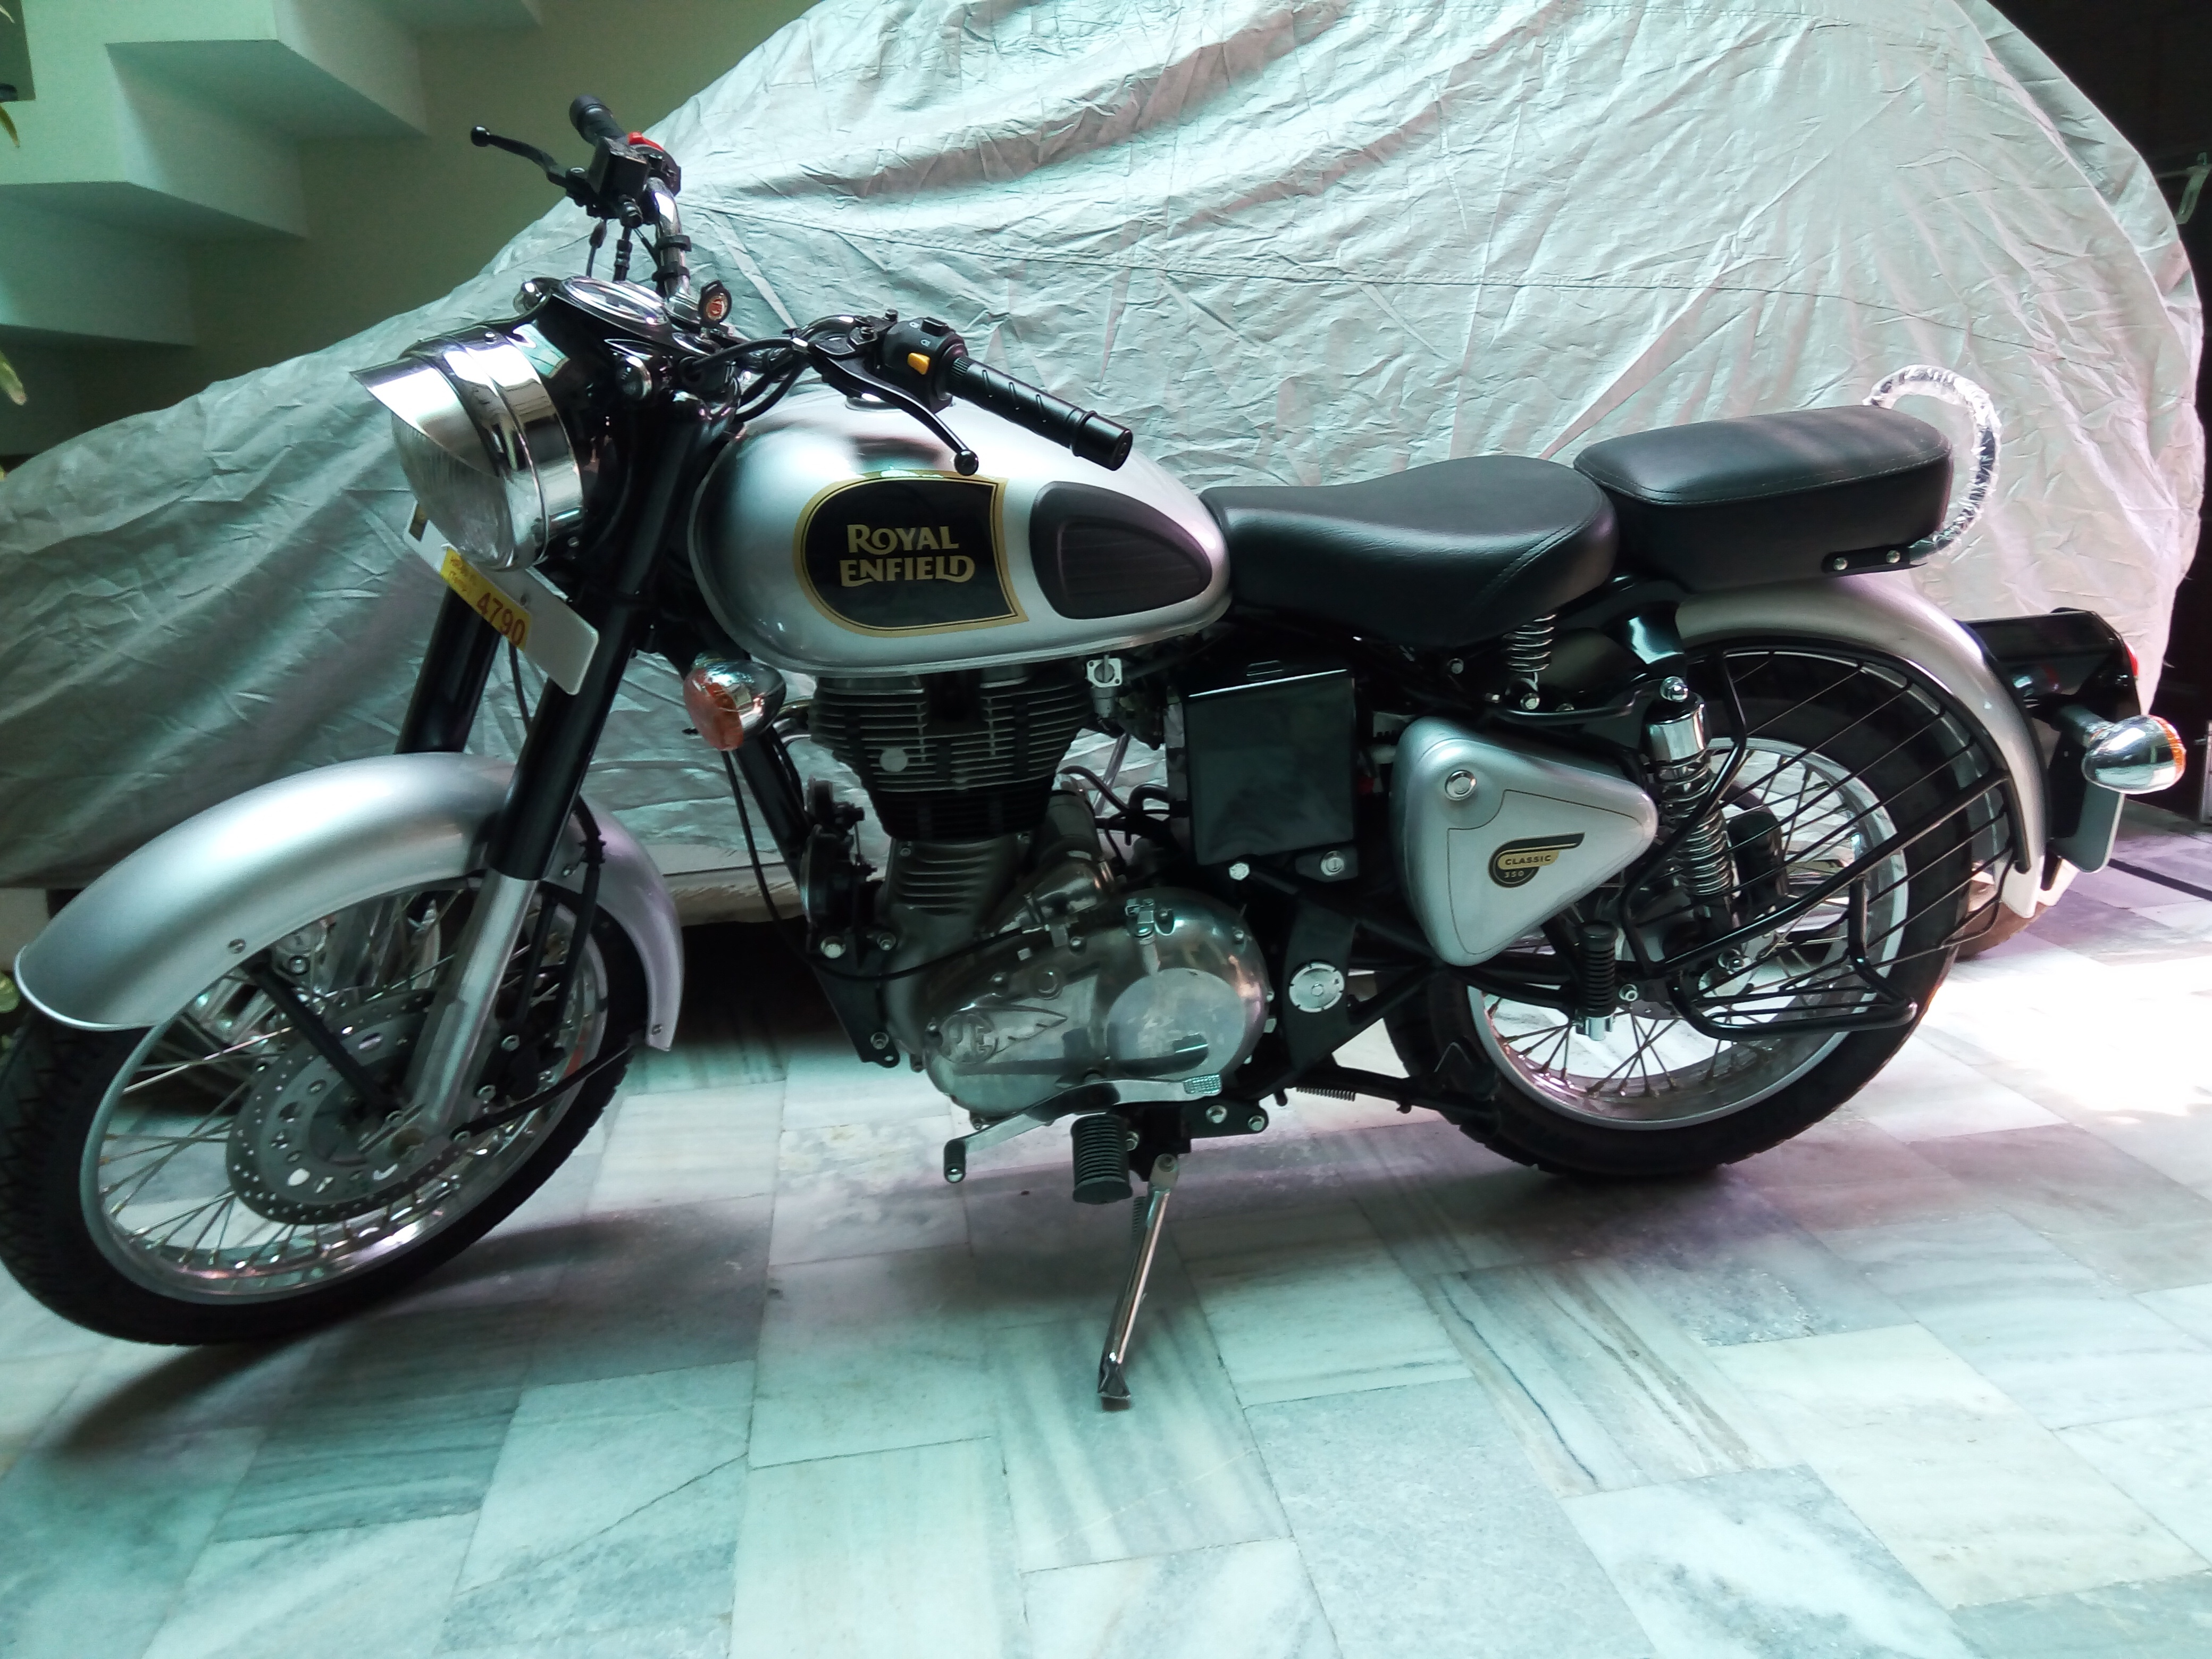 royal enfield classic 350 photos images and wallpapers. Black Bedroom Furniture Sets. Home Design Ideas